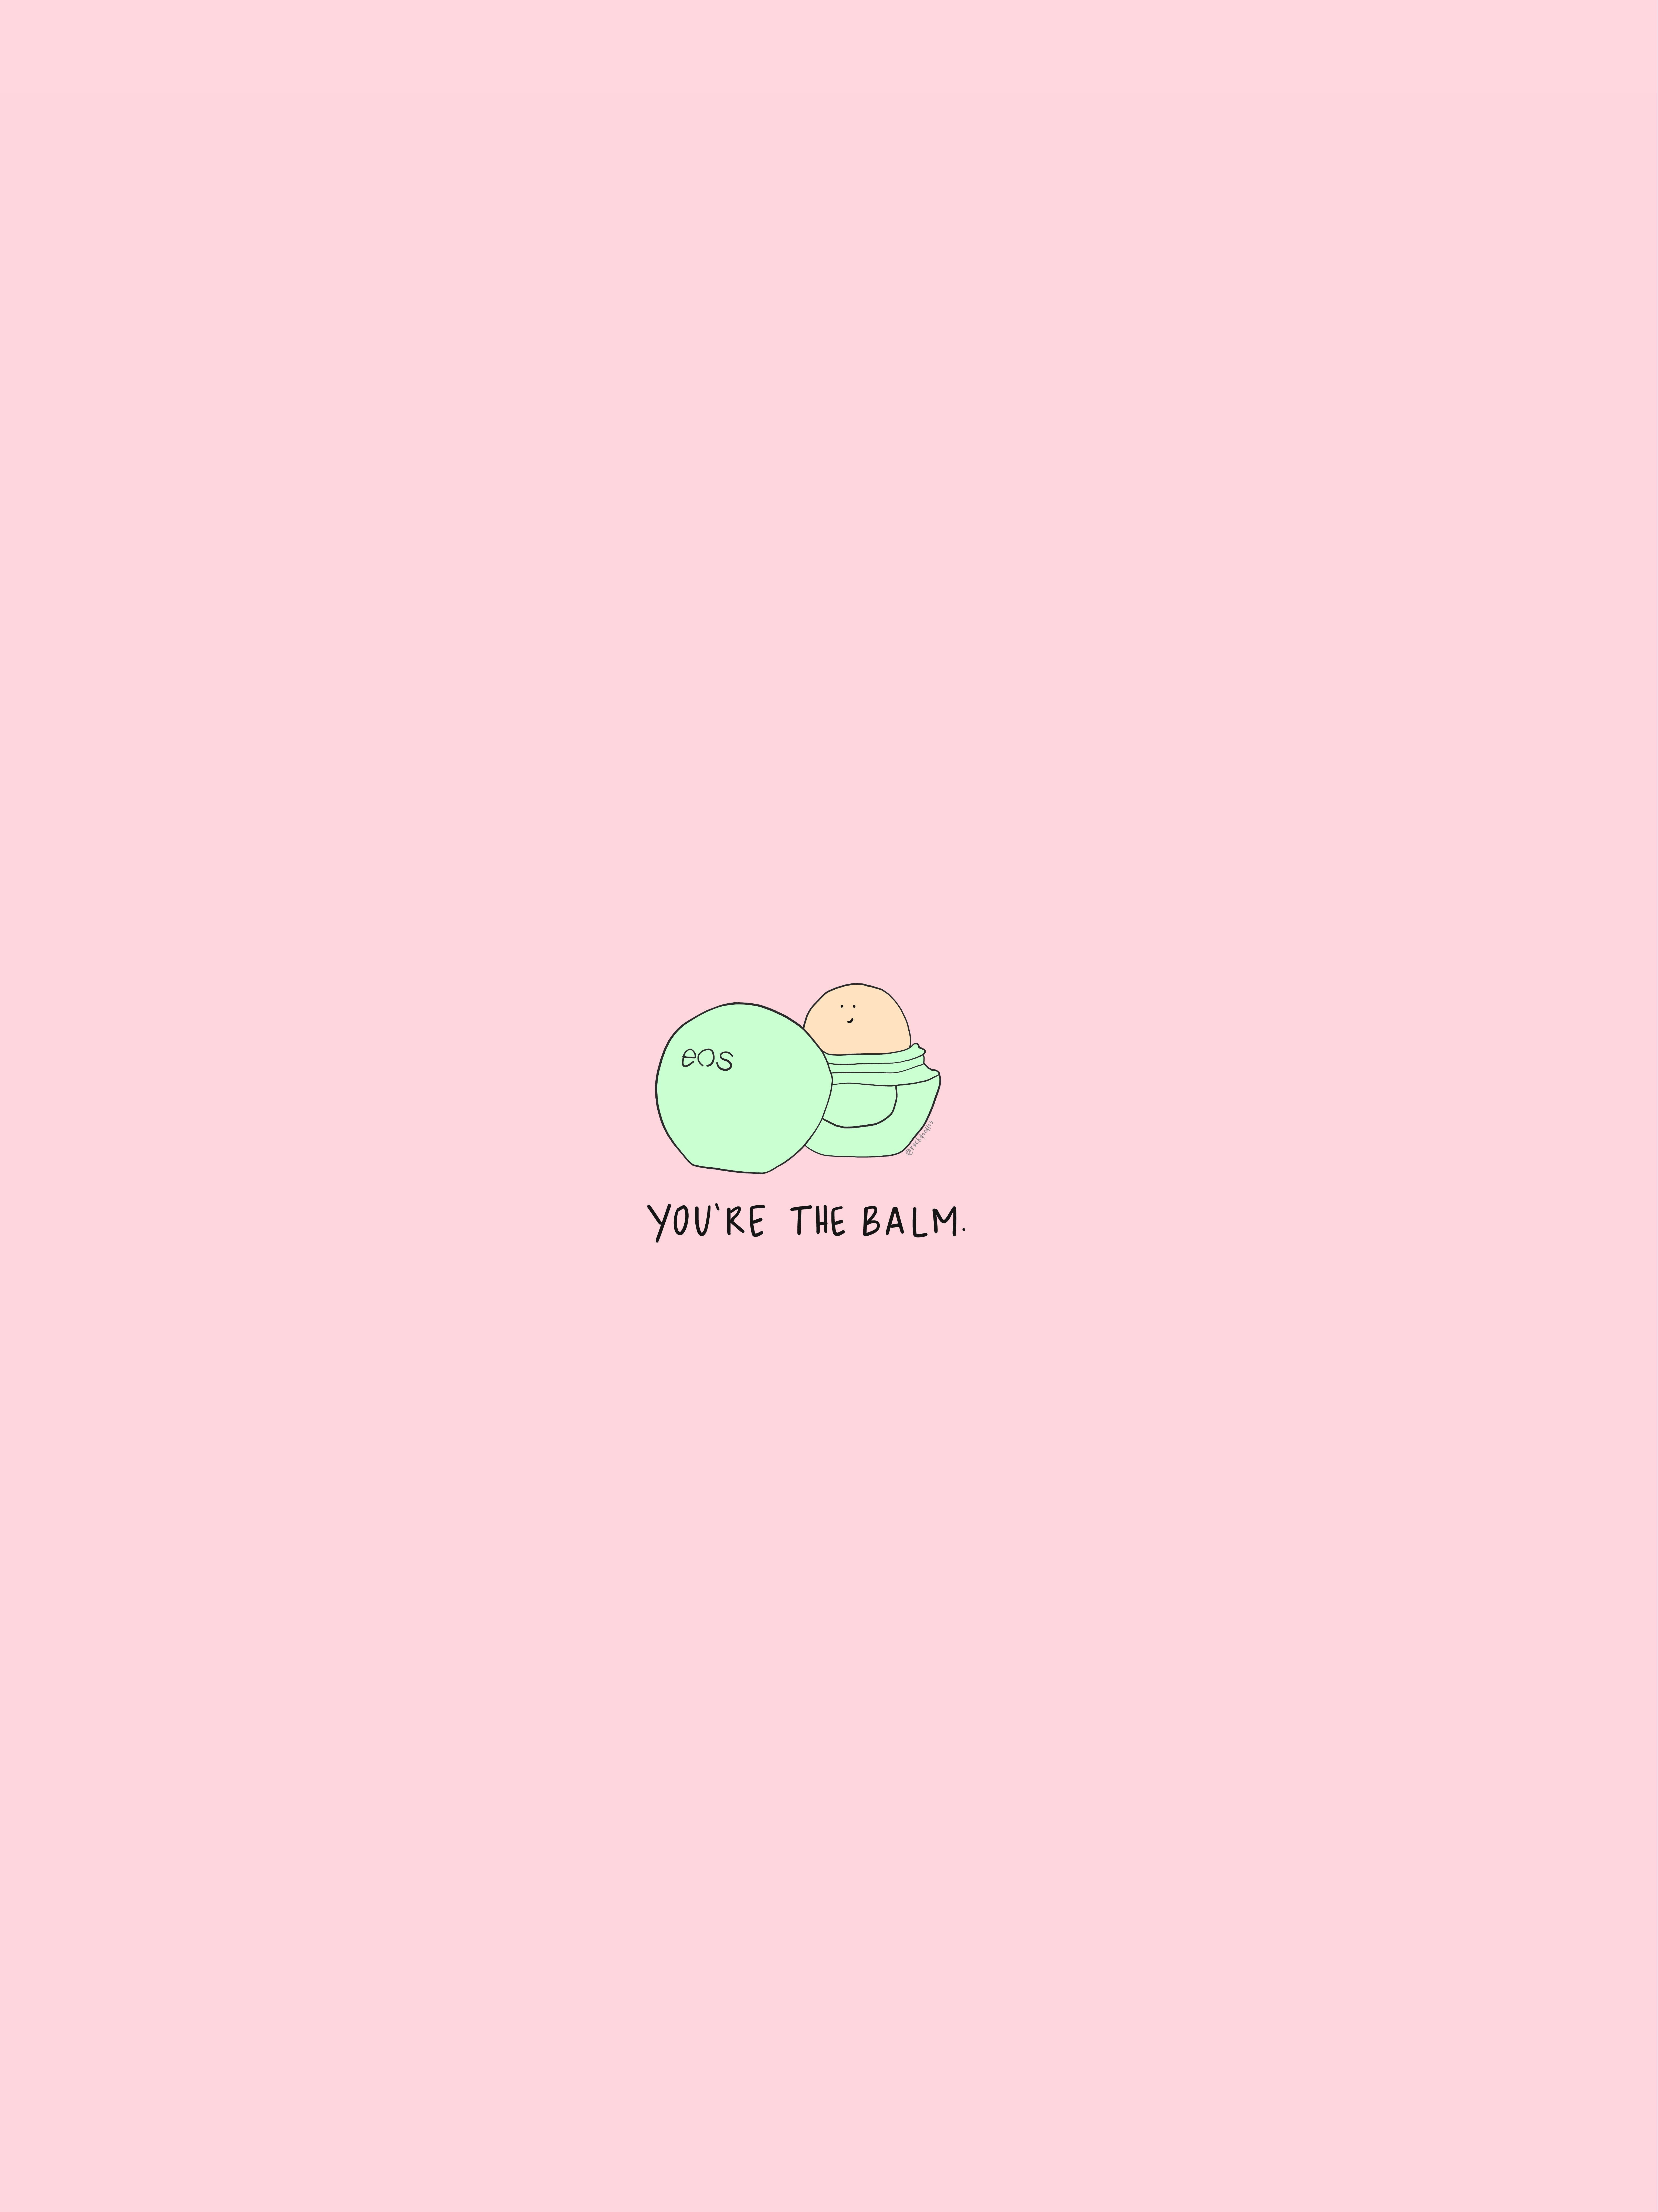 Cute Aesthetic iPhone Wallpapers - Wallpaper Cave